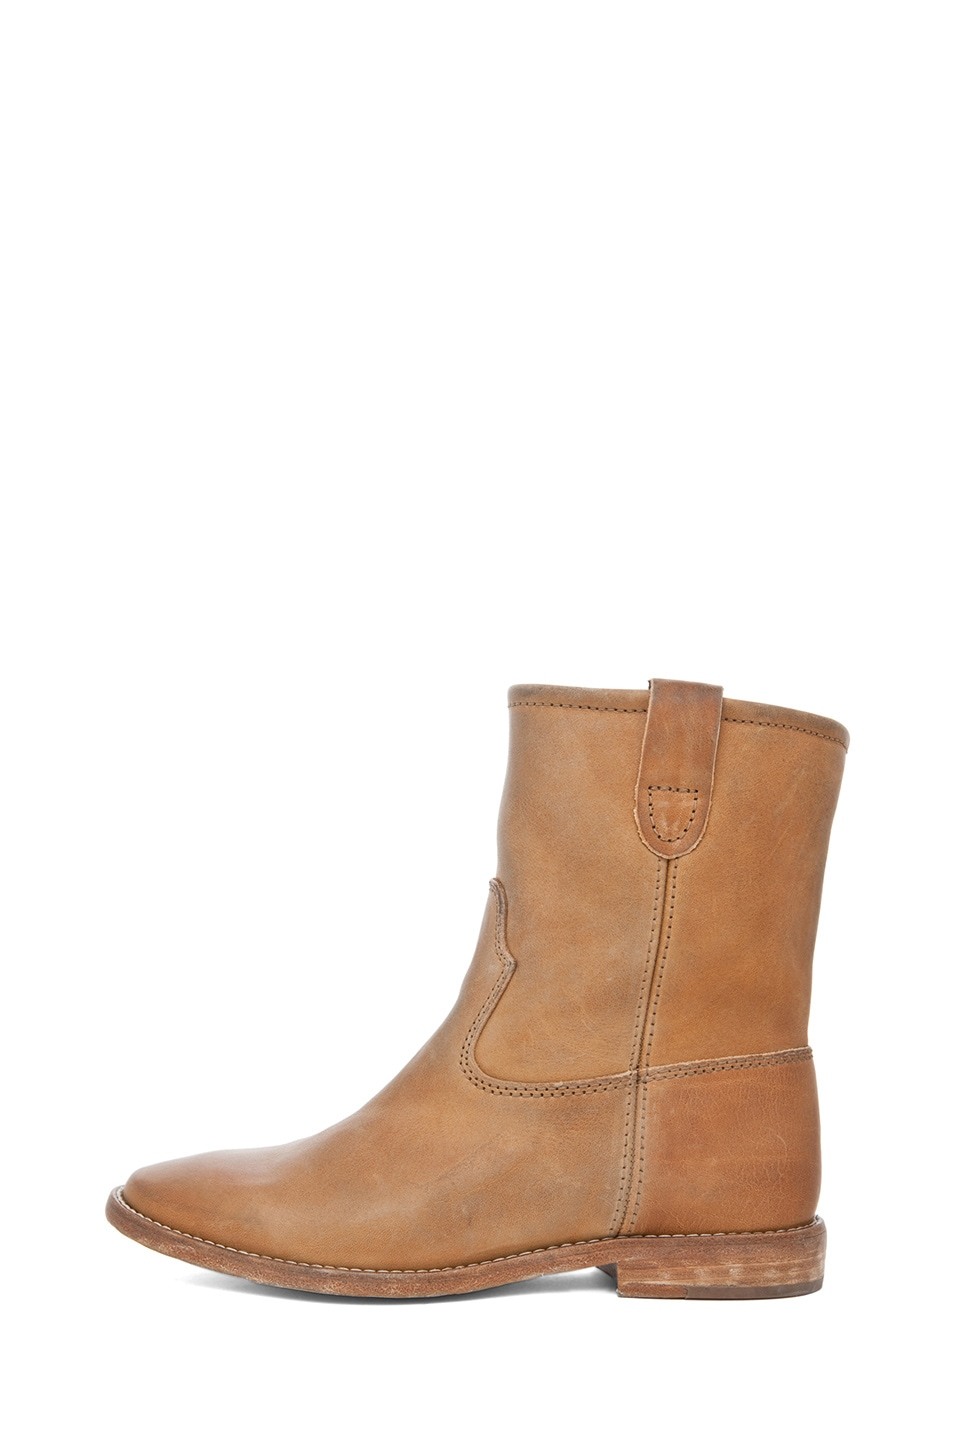 Image 1 of Isabel Marant Jenny Calfskin Leather Boots in Naturel